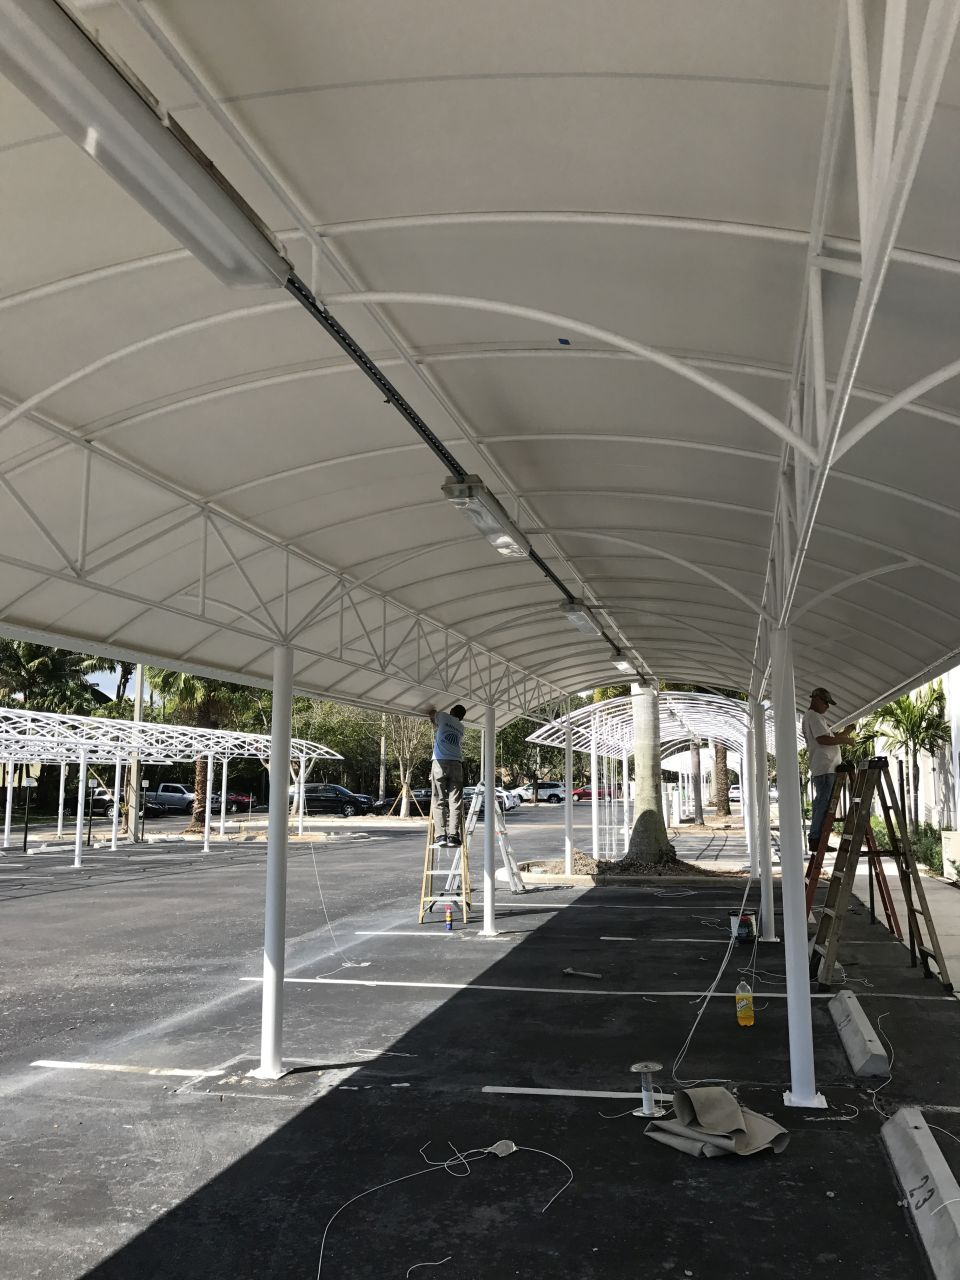 Round Marquee Awnings - Awning Contractors & Designers, Inc.